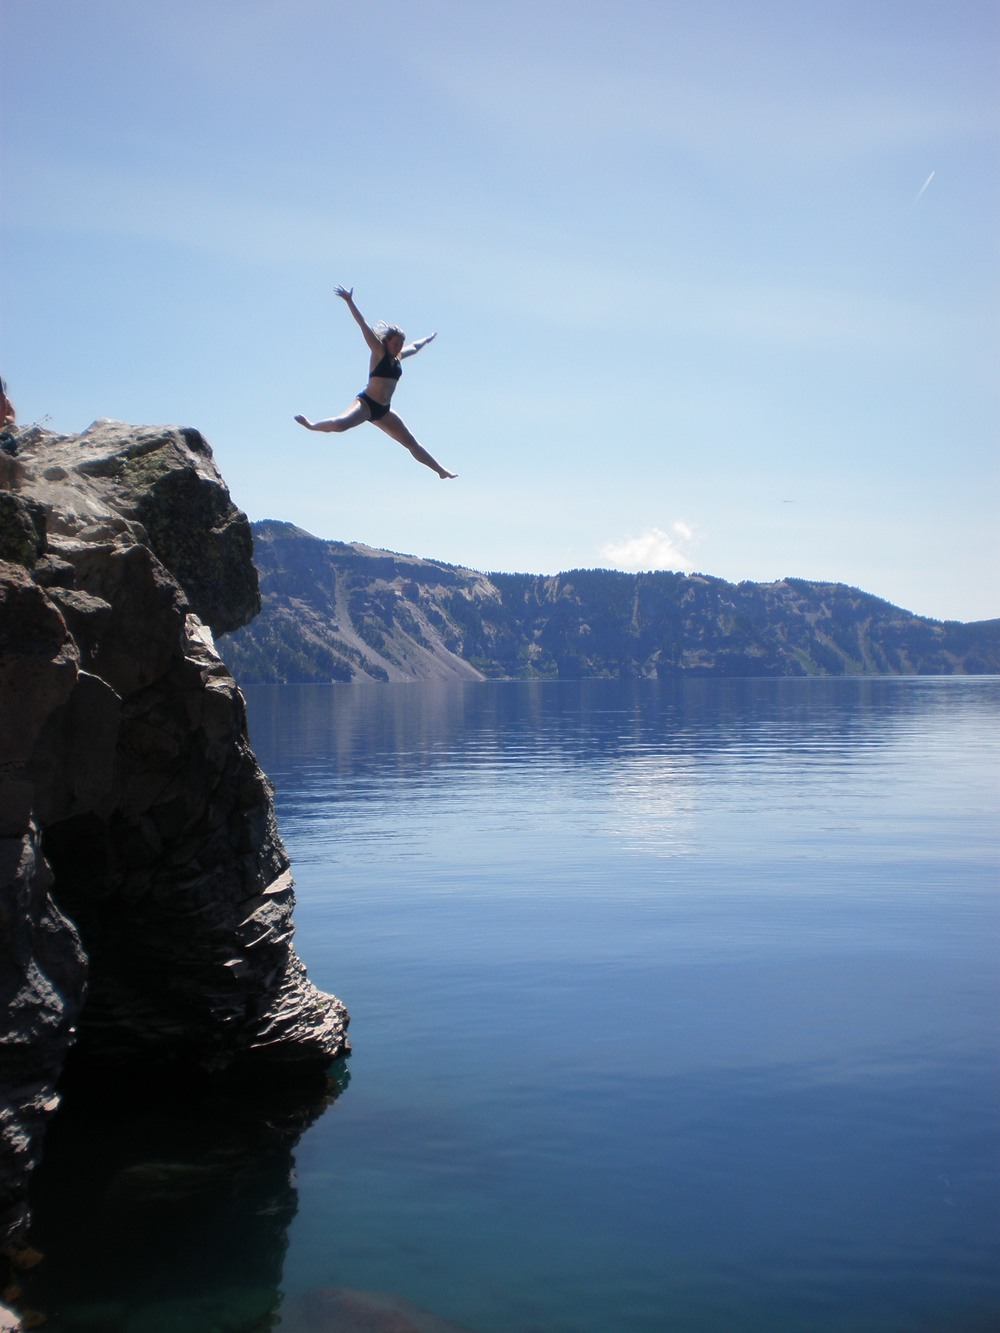 One of my absolute favorite memories: jumping off a cliff into the beautiful, cold waters of Crater Lake.